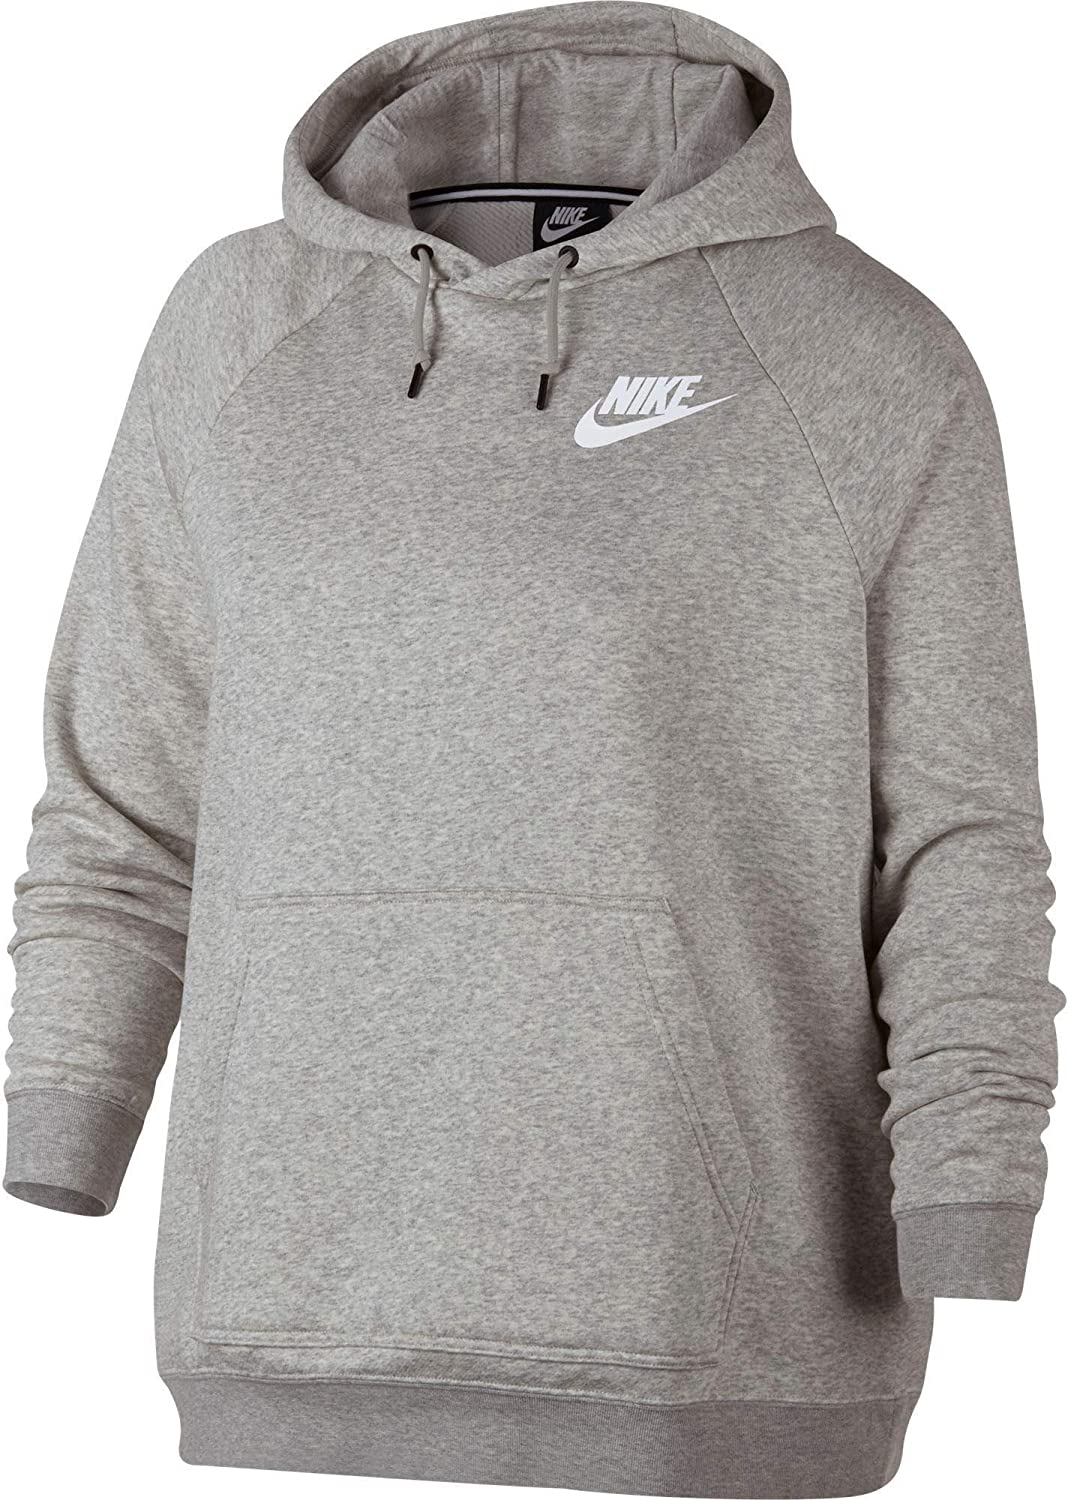 speical offer special for shoe cheaper Nike Womens Plus Size Sportswear Rally Hoodie